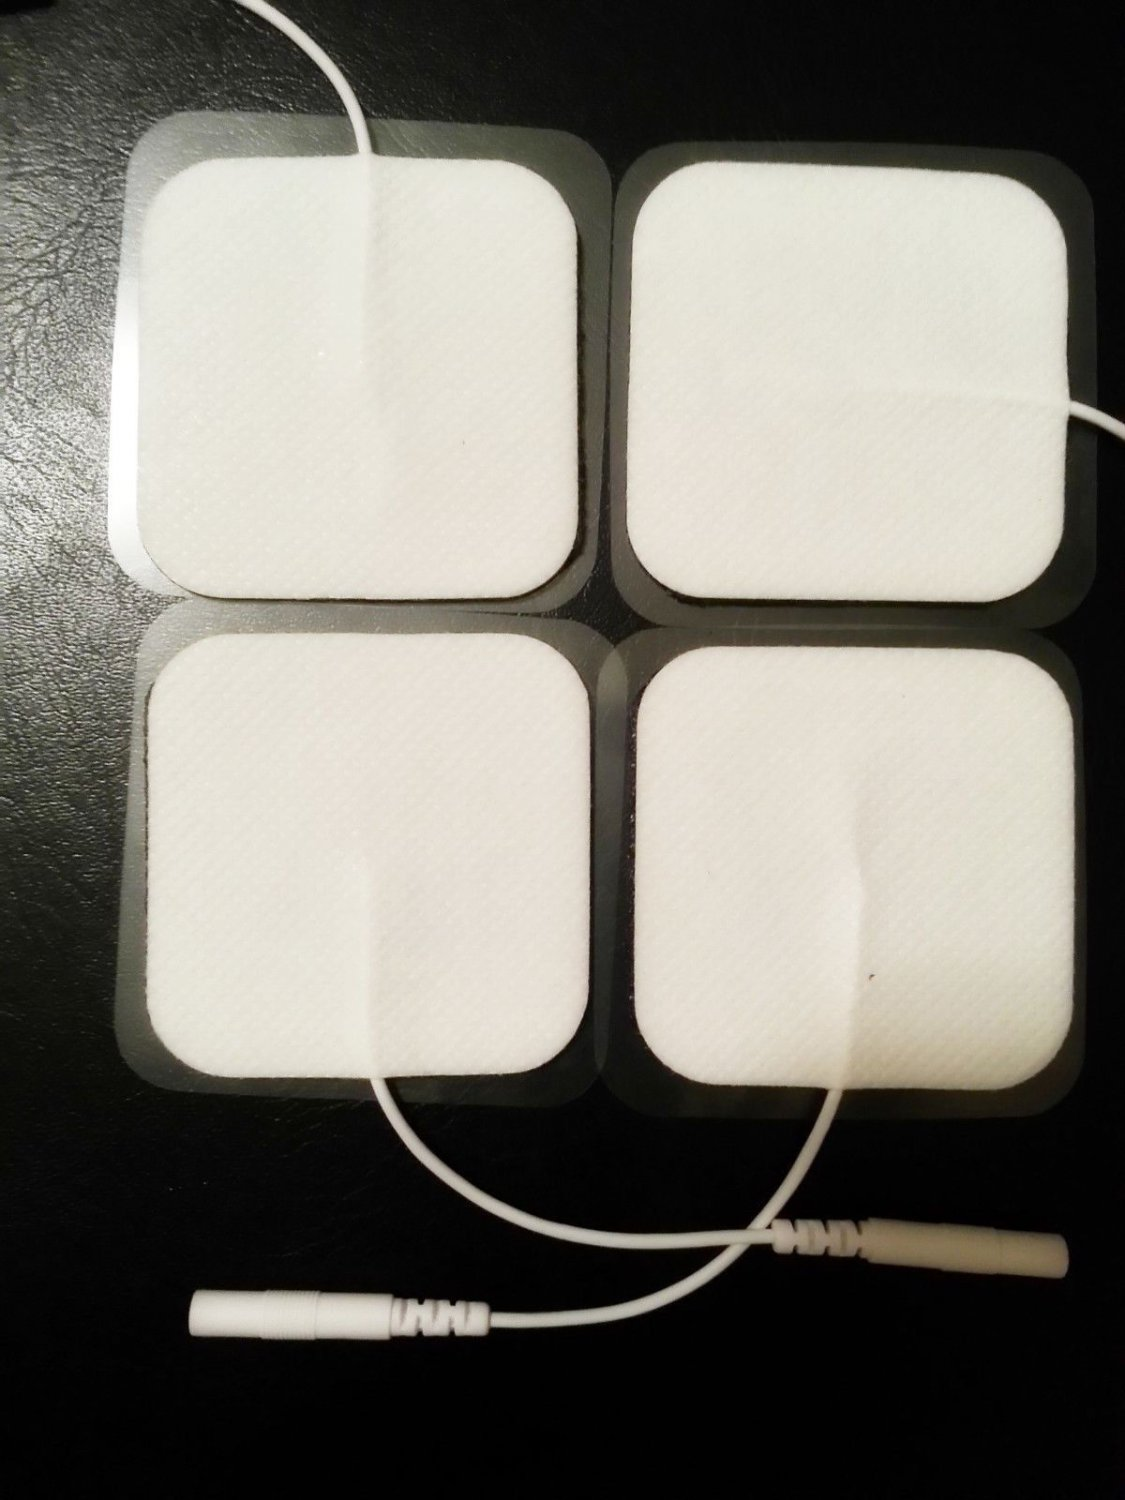 8 PC SQUARE REPLACEMENT ELECTRODE MASSAGE PADS-For MAGIC TOUCH PRO SERIES 103